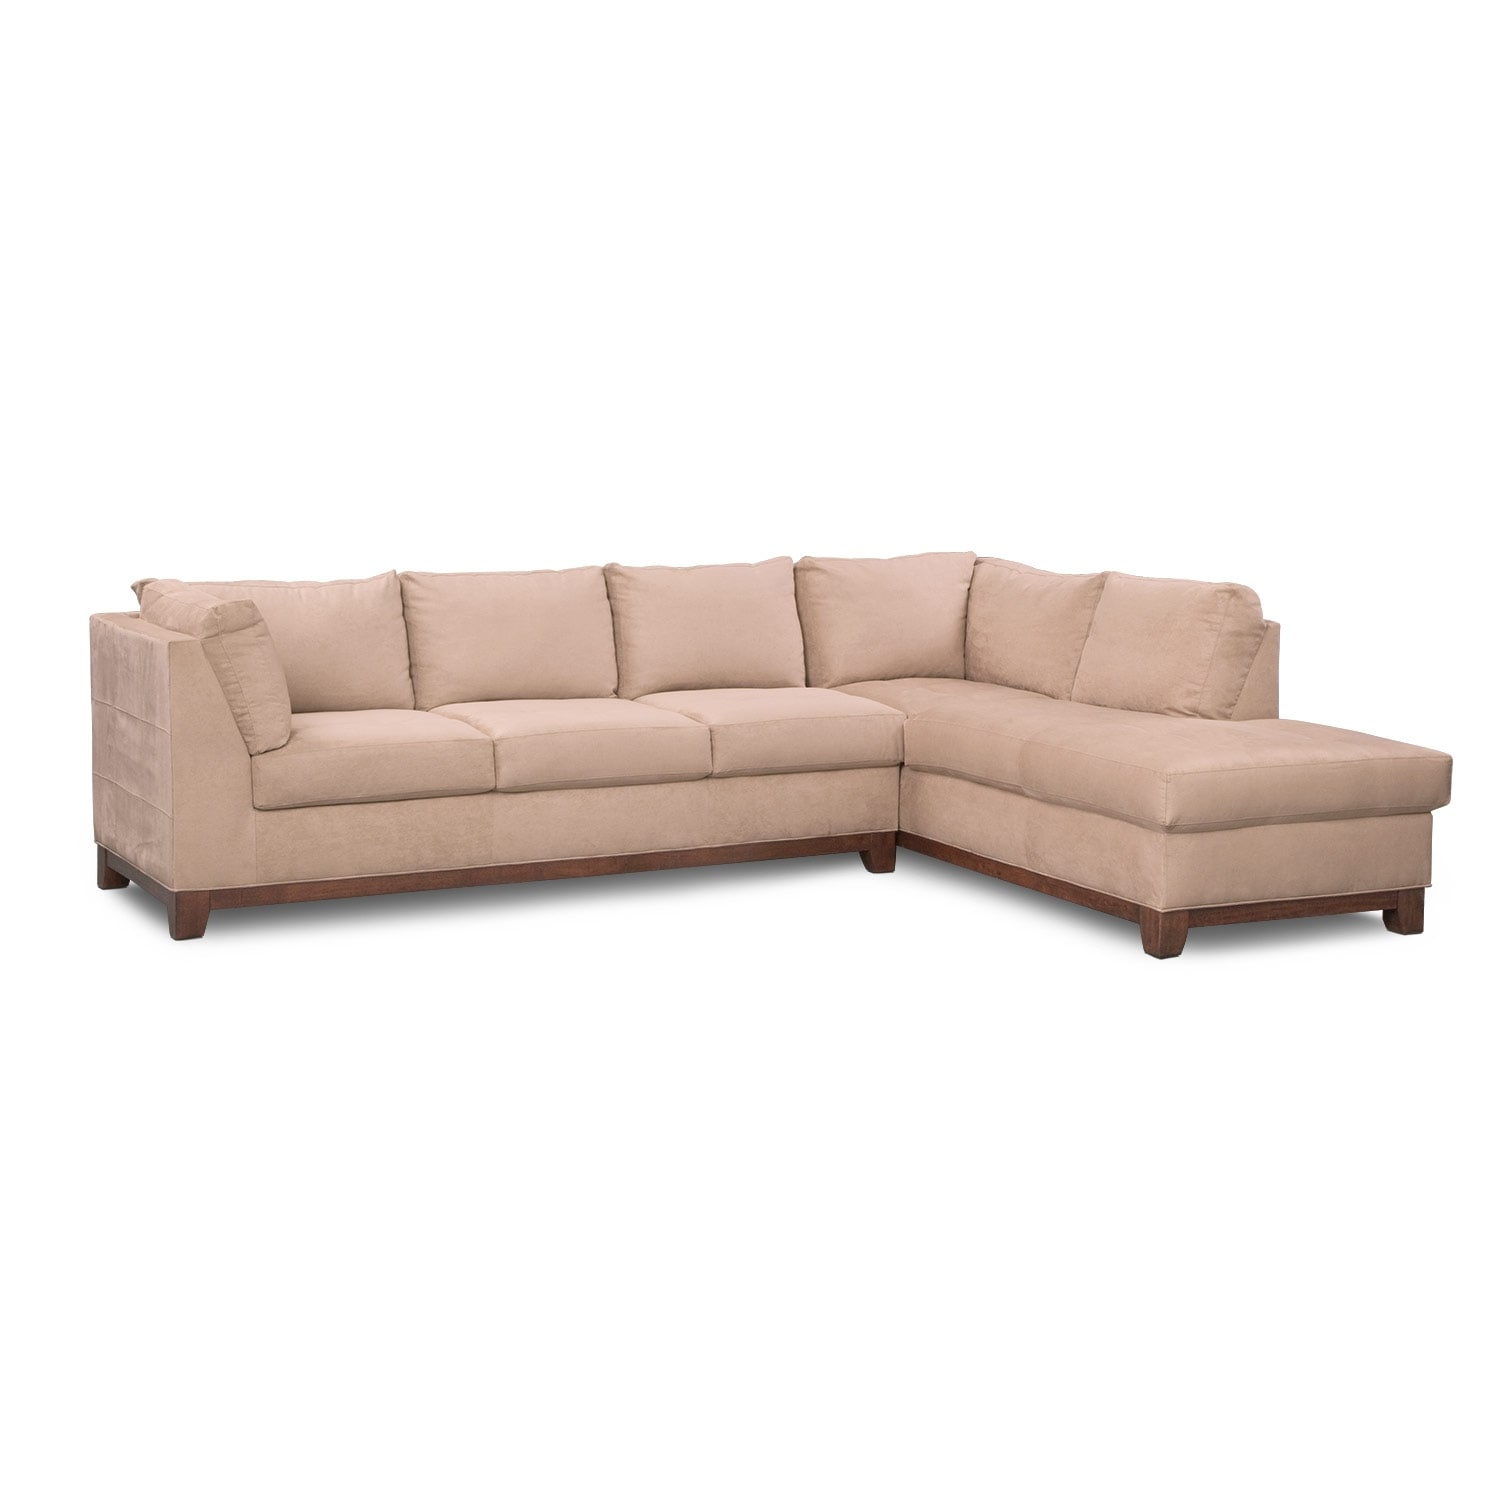 Soho 2 piece sectional with right facing chaise for 2 piece sectional sofa with chaise